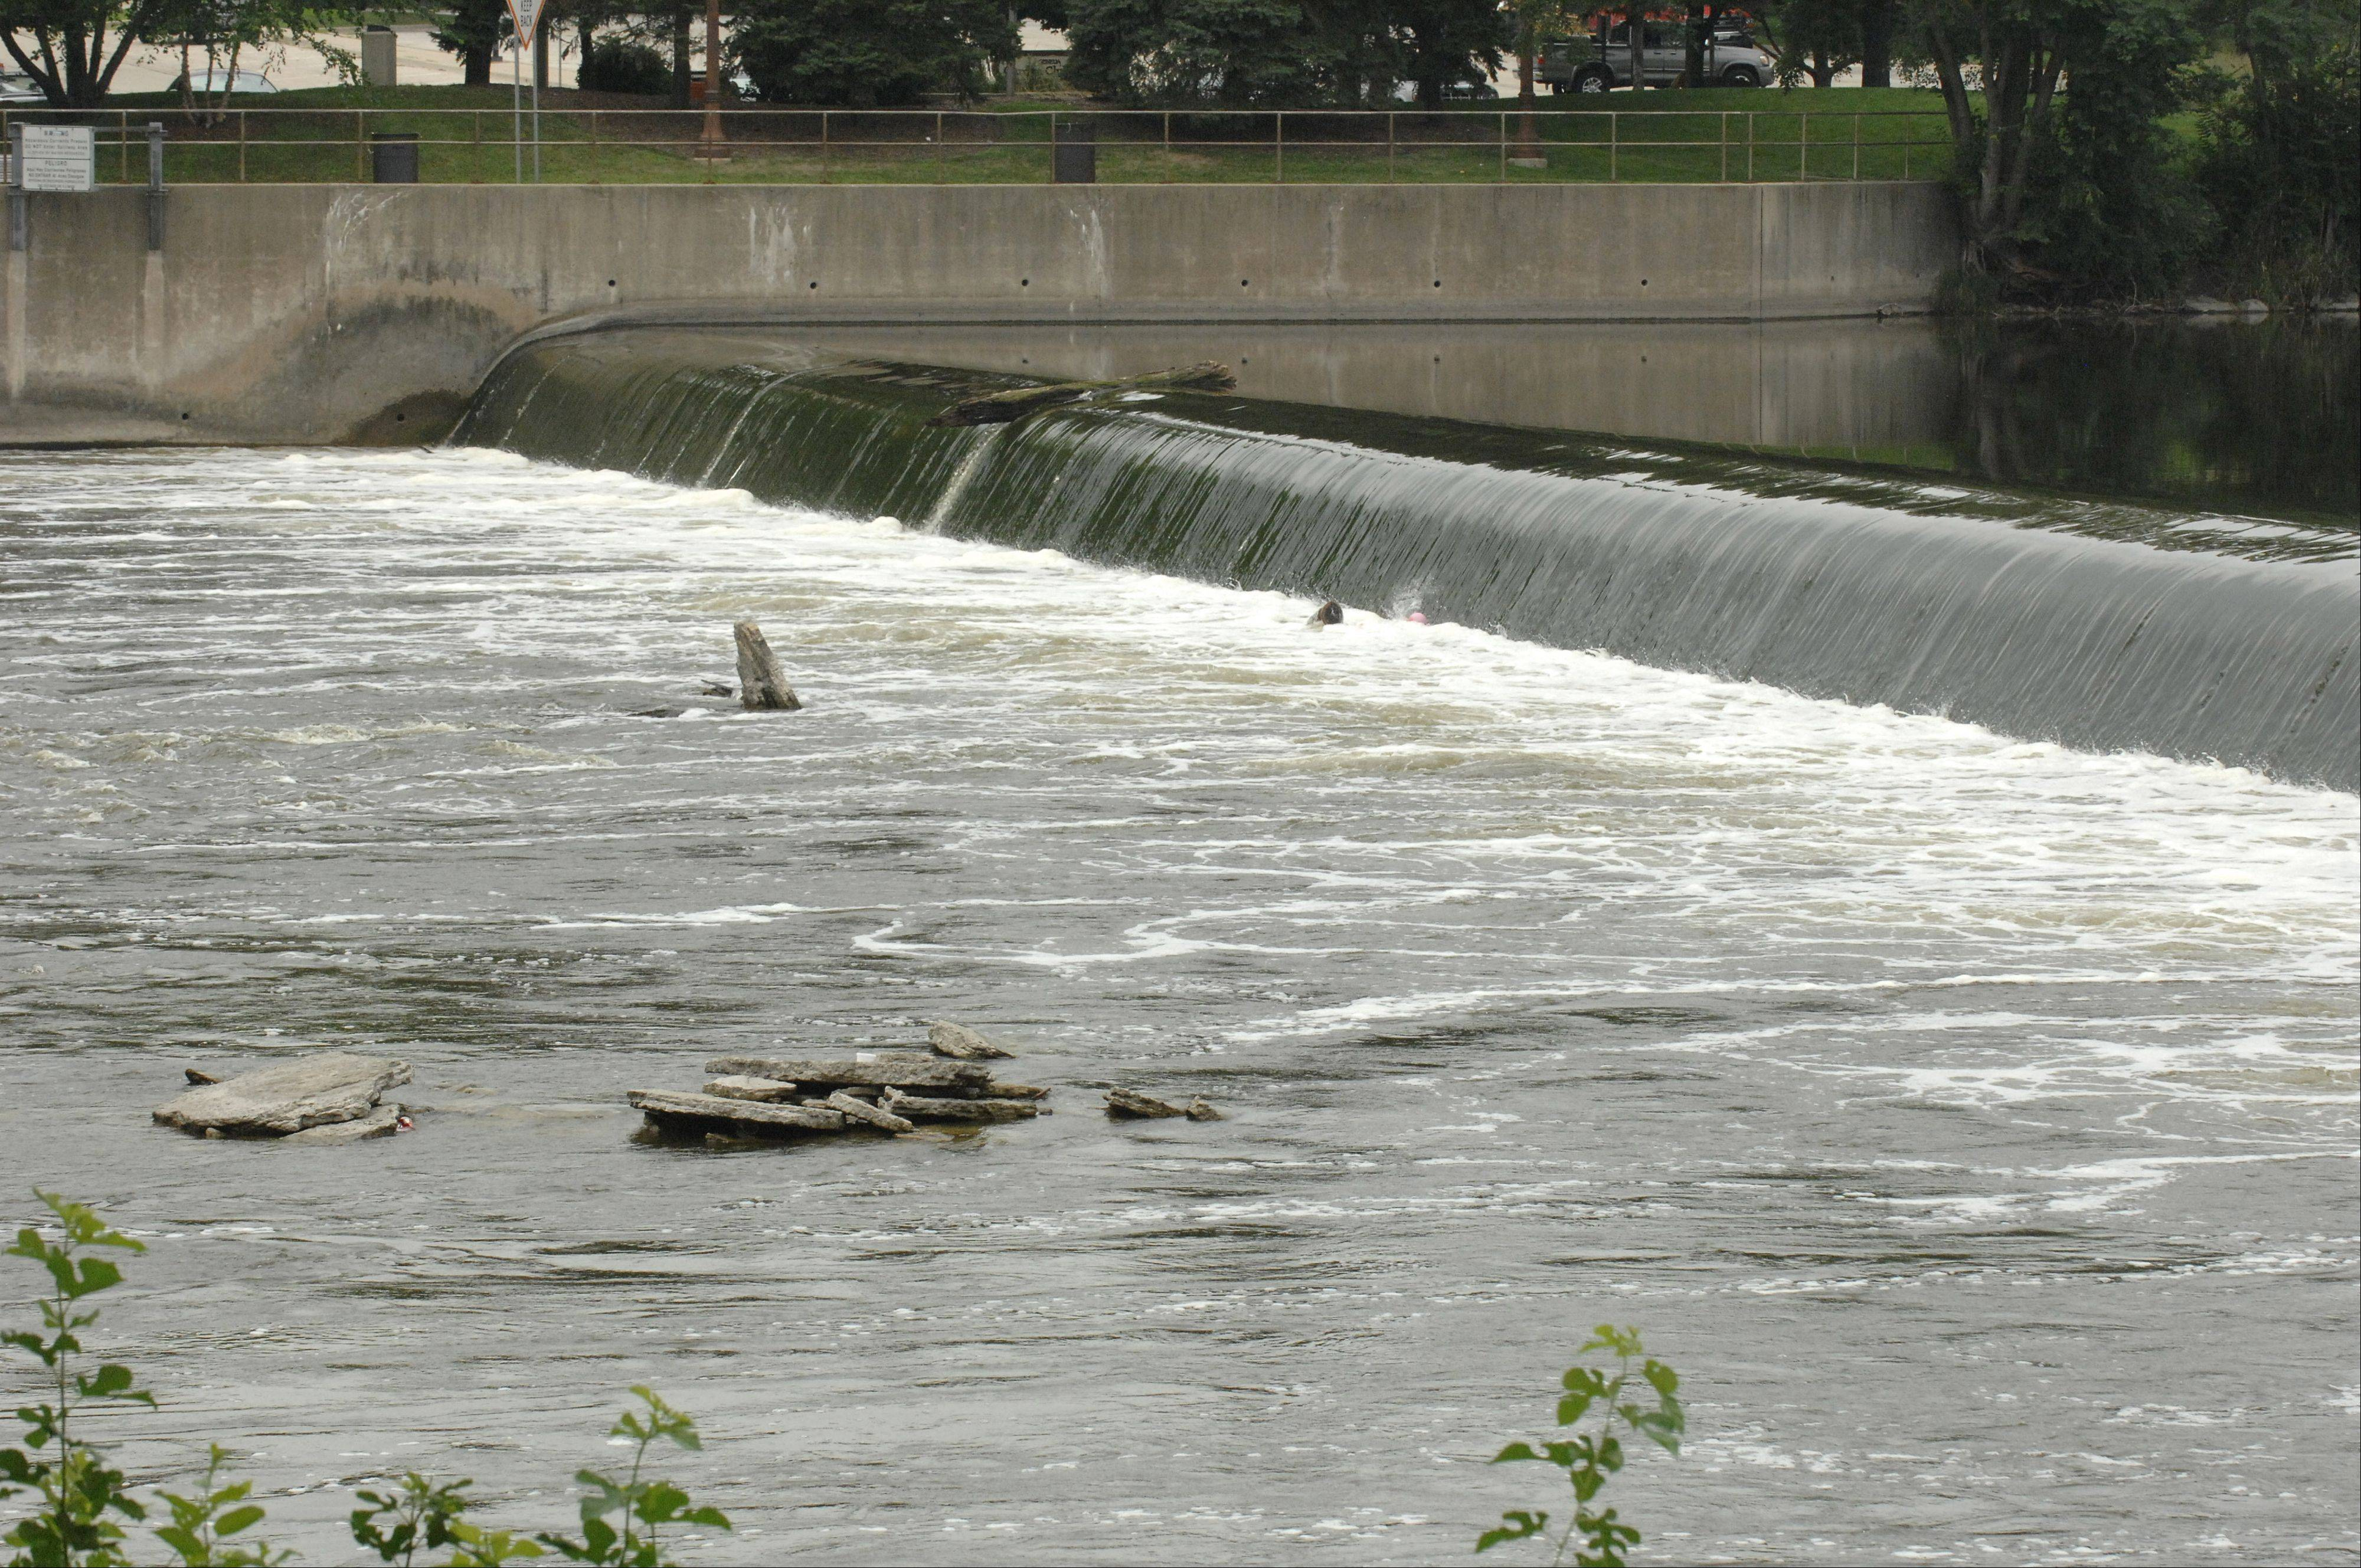 A man and older boy were rescued from a boil in the Geneva dam by a passing group of bicyclists from Naperville on Friday. The man, from Bolingbrook, later died, police said Friday night.